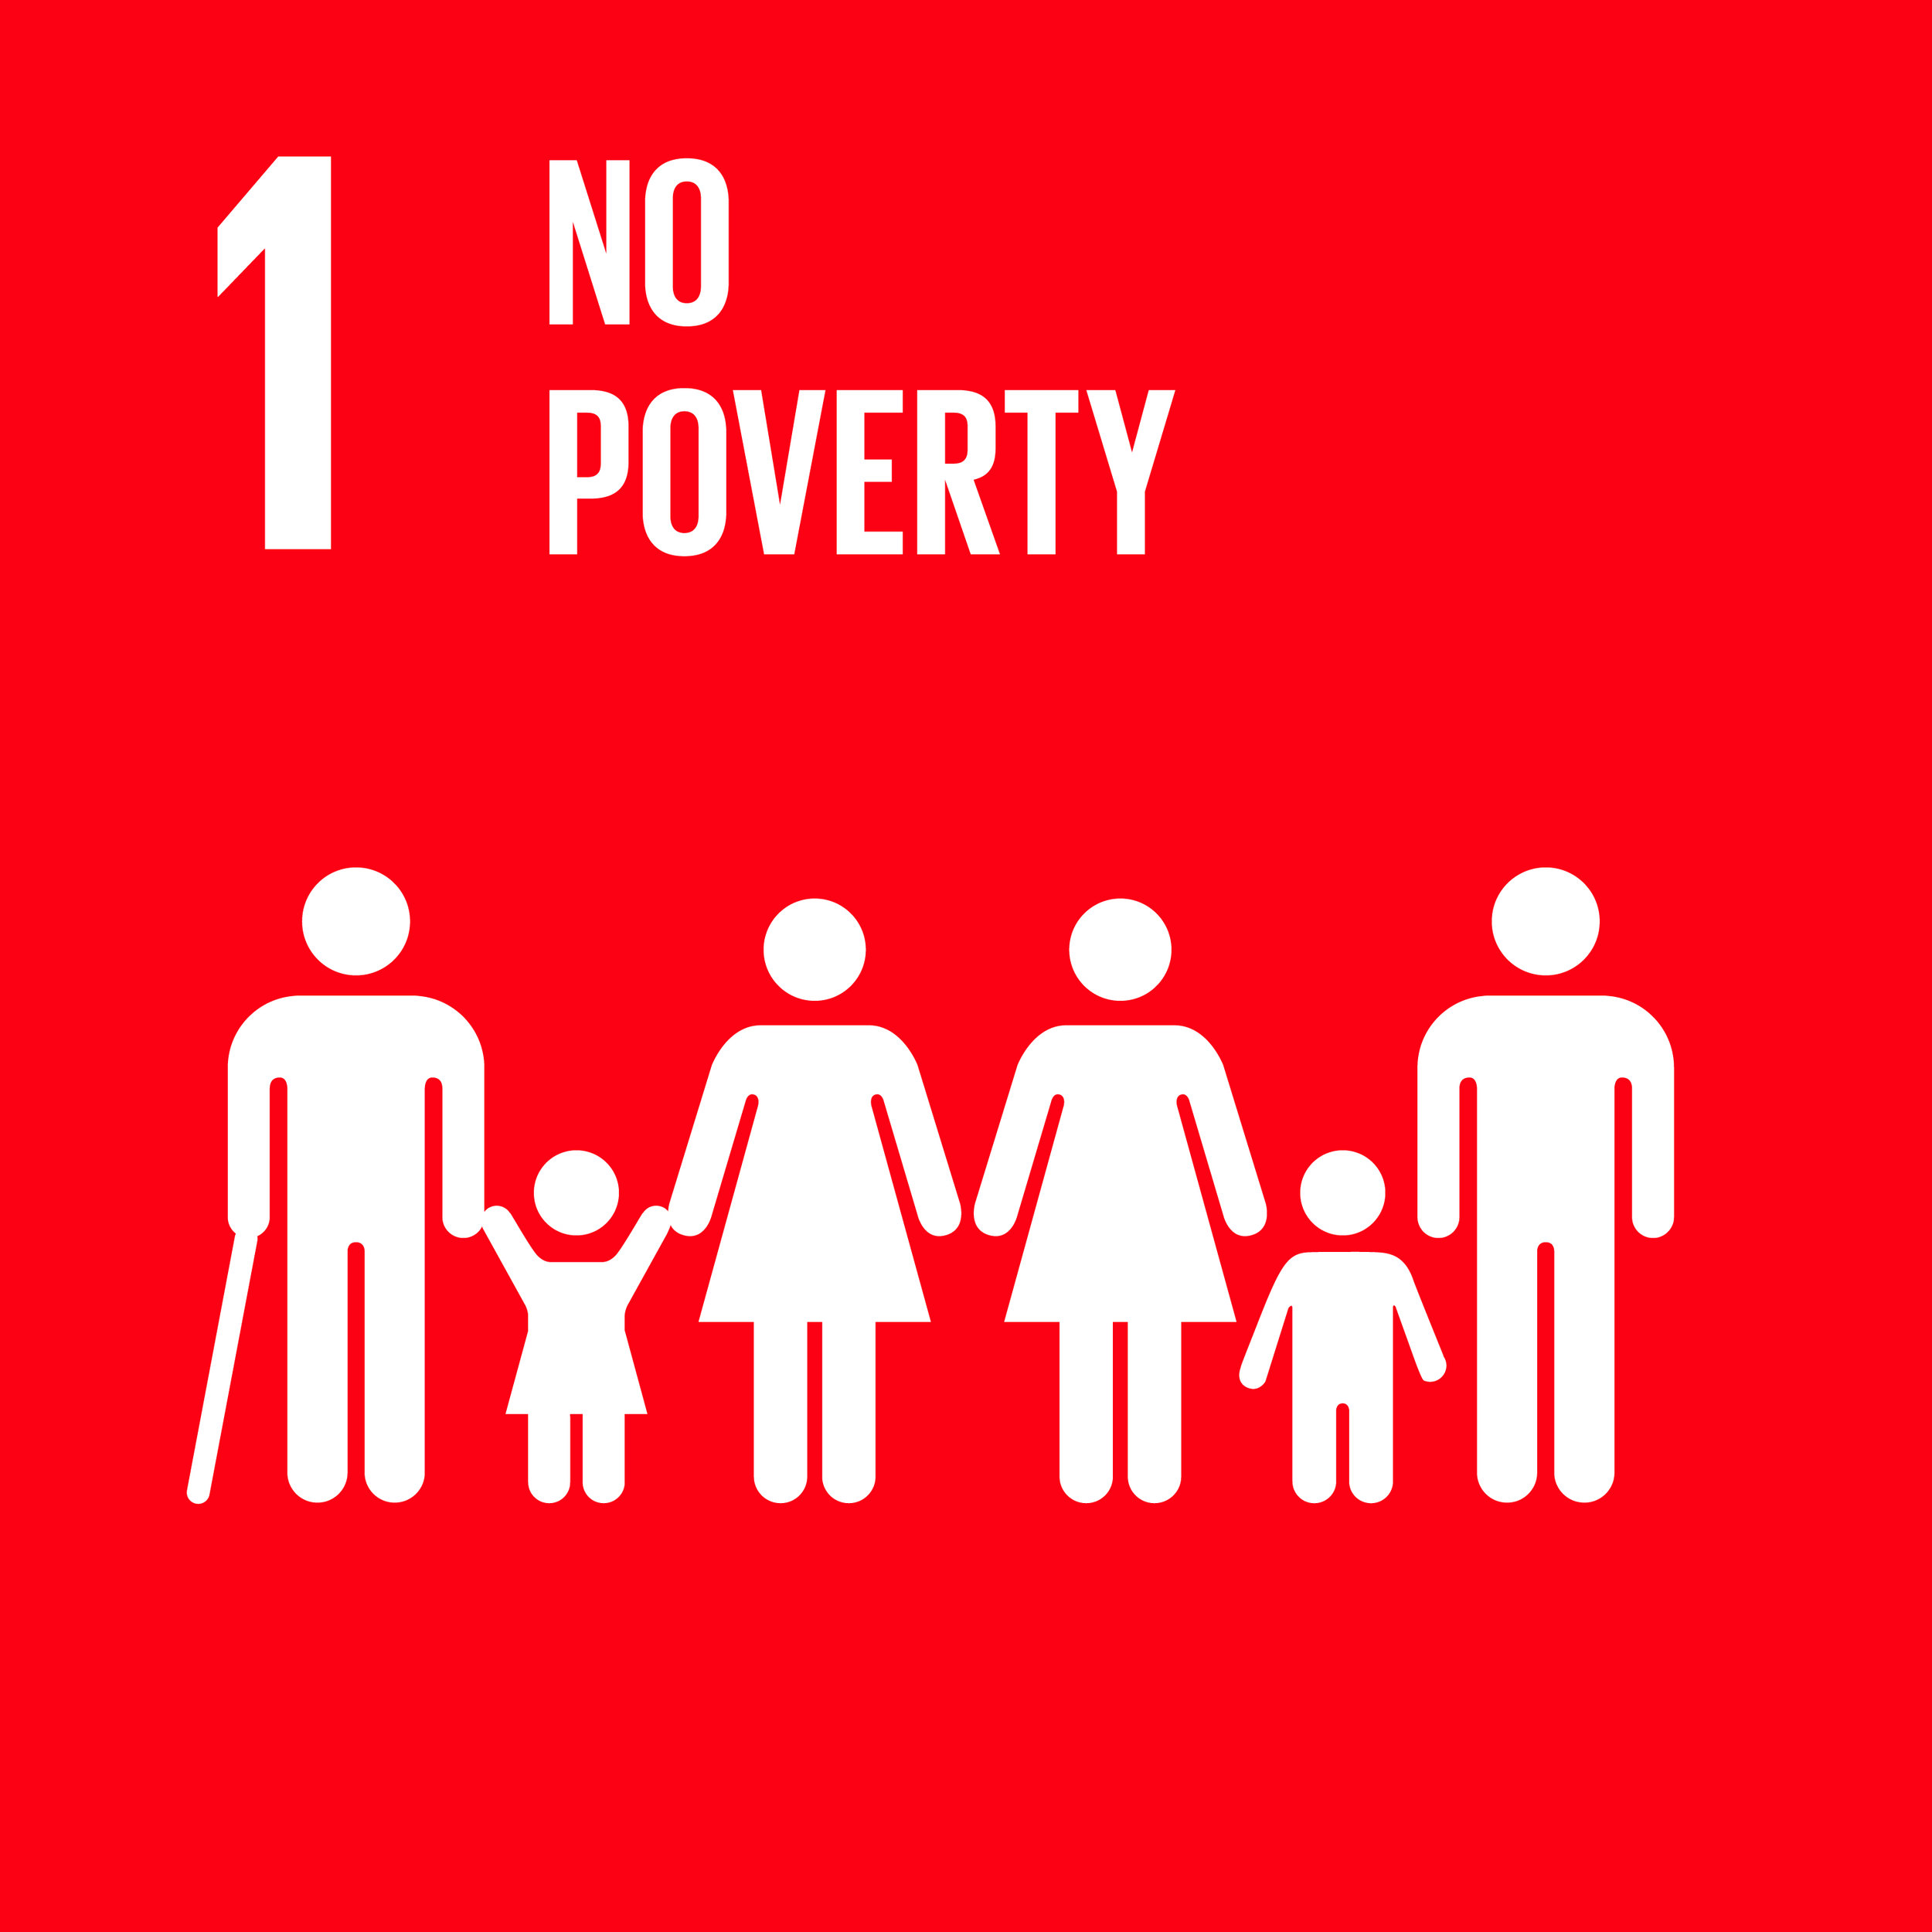 Sustainable Development Goals 1